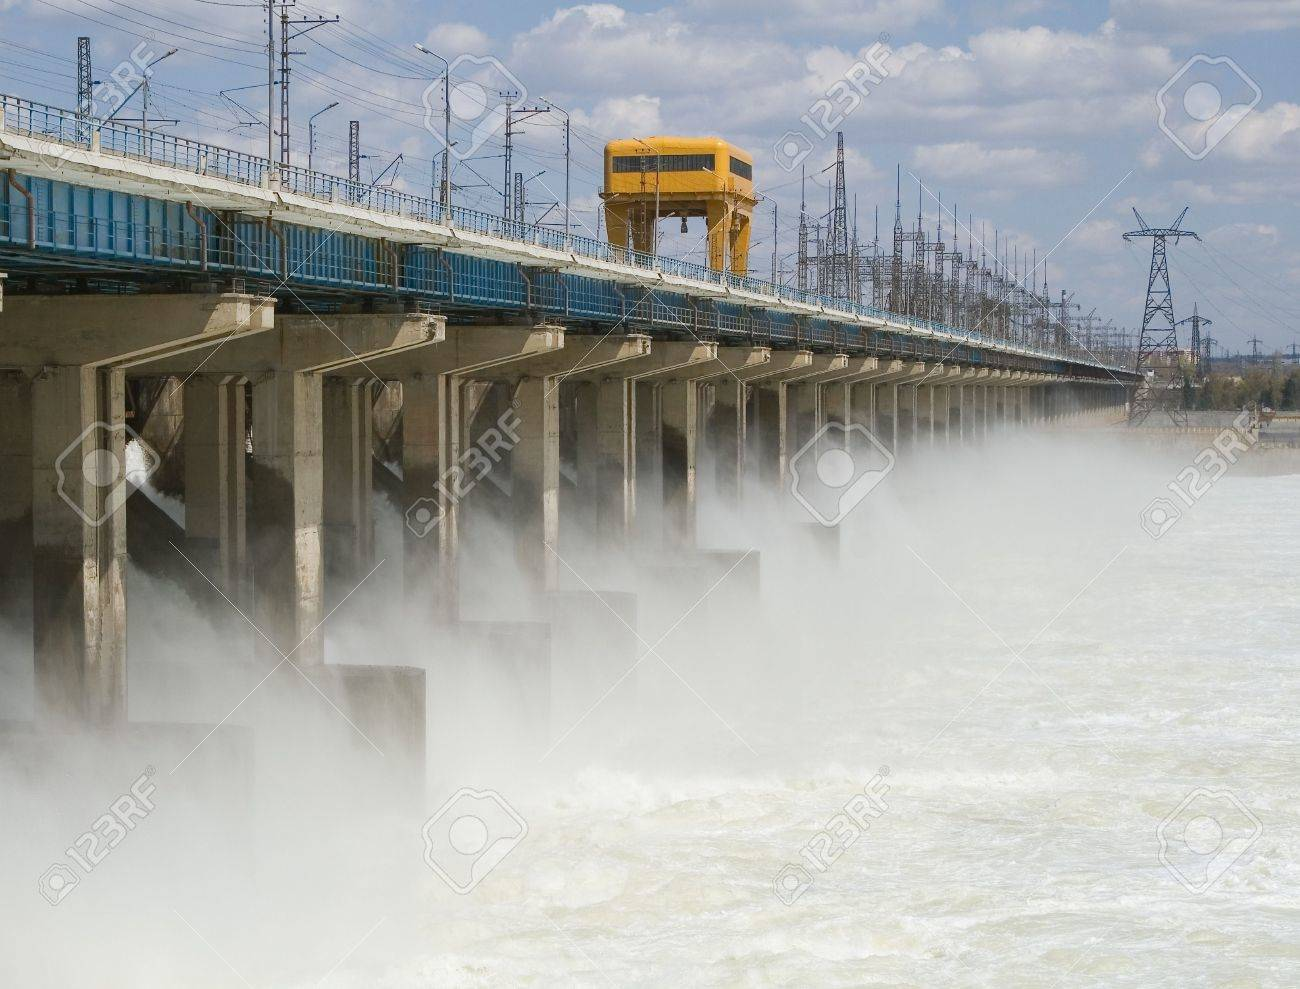 Reset of water at hydroelectric power station on the river Stock Photo - 7928528